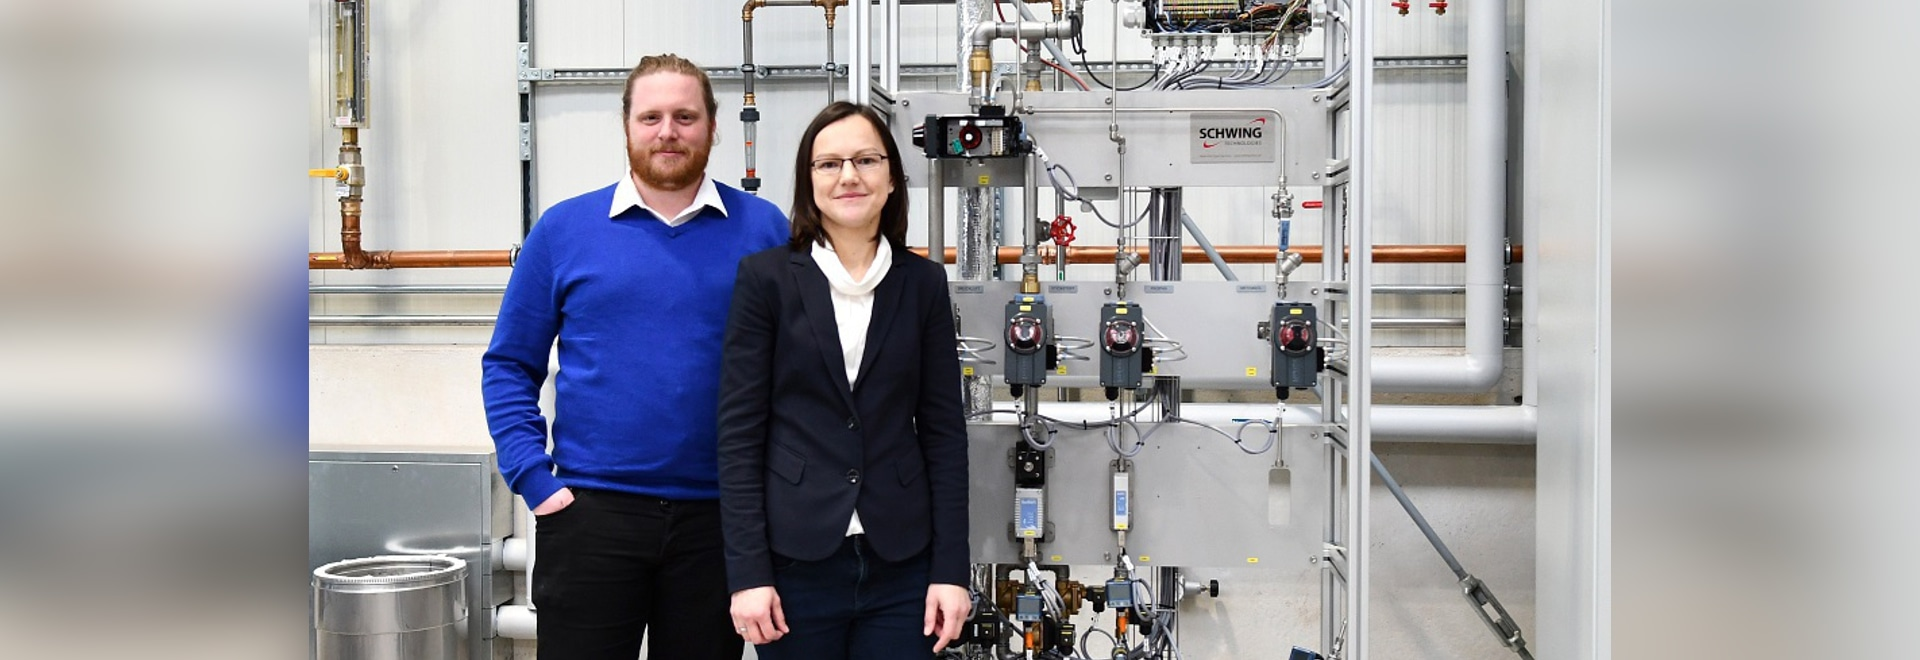 Julian Nienhaus and Natalya Prodan, Experts of Fluidized Bed Process Technology at SCHWING Technologies